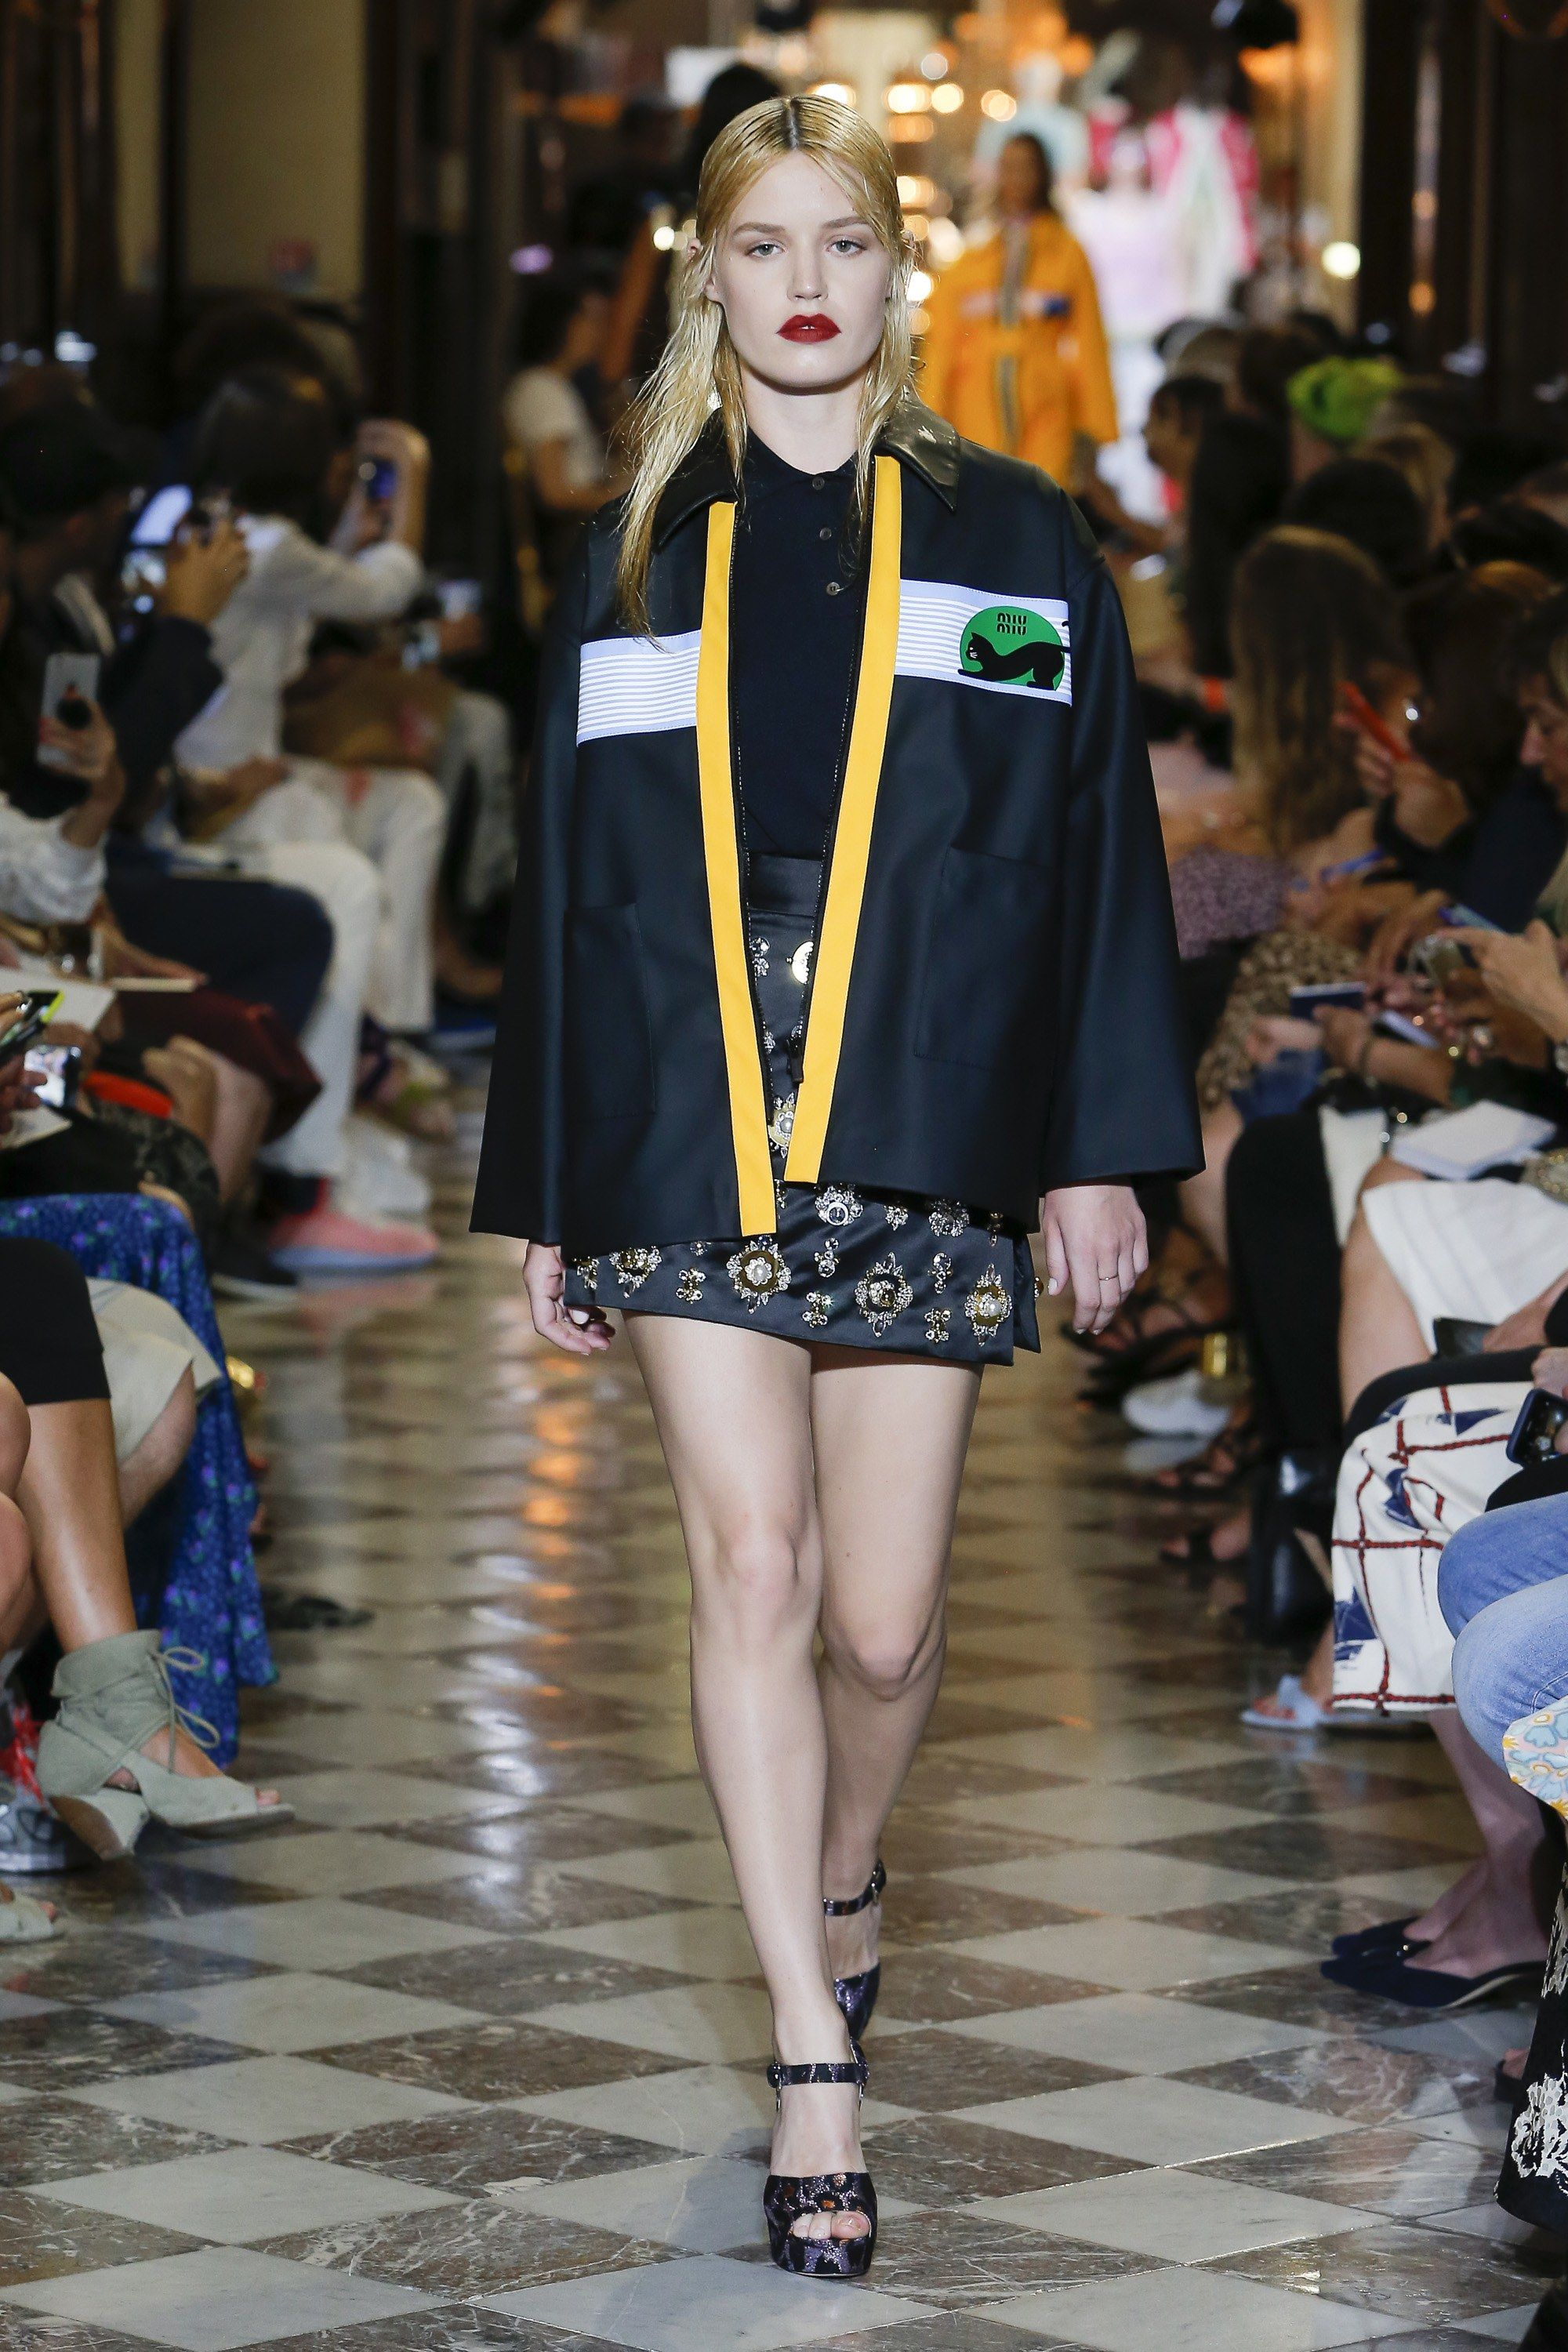 a9603a0b6246 Miu Miu Resort 2019 Collection - Vogue  clothes  beautifulclothes  fashion   apparel  fashiontrends  style  stylewatch  fashioninspiration  designers   MiuMiu ...